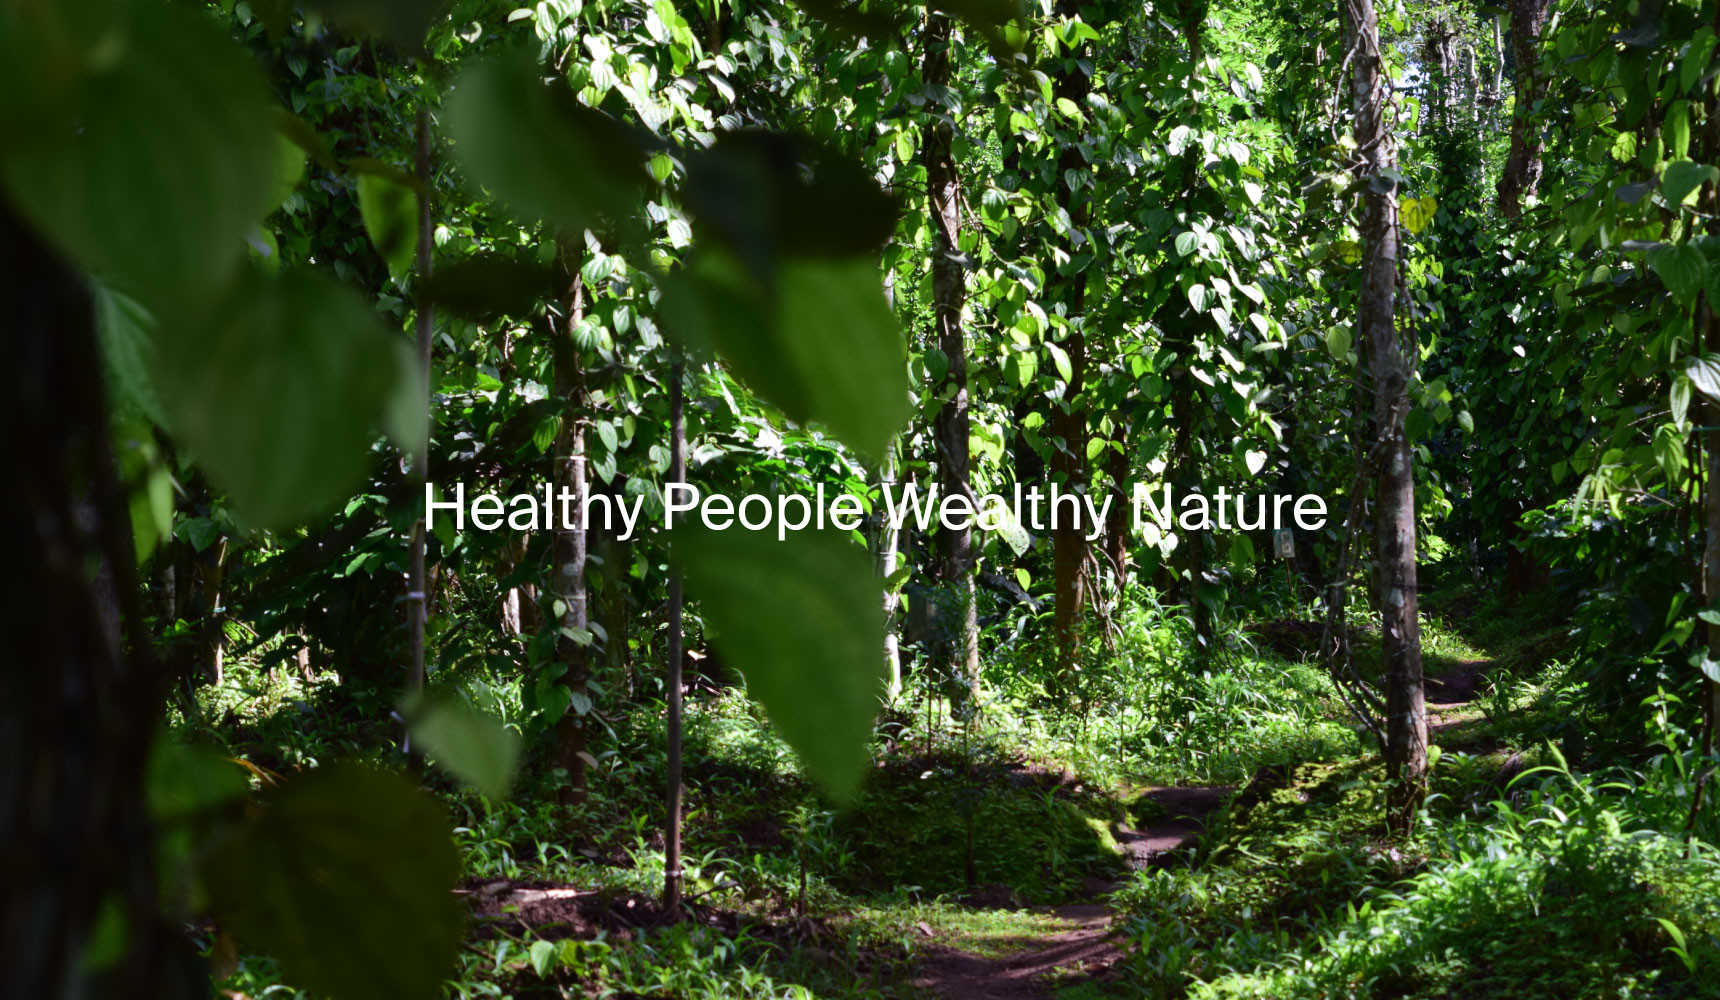 Healthy People Wealthy Nature